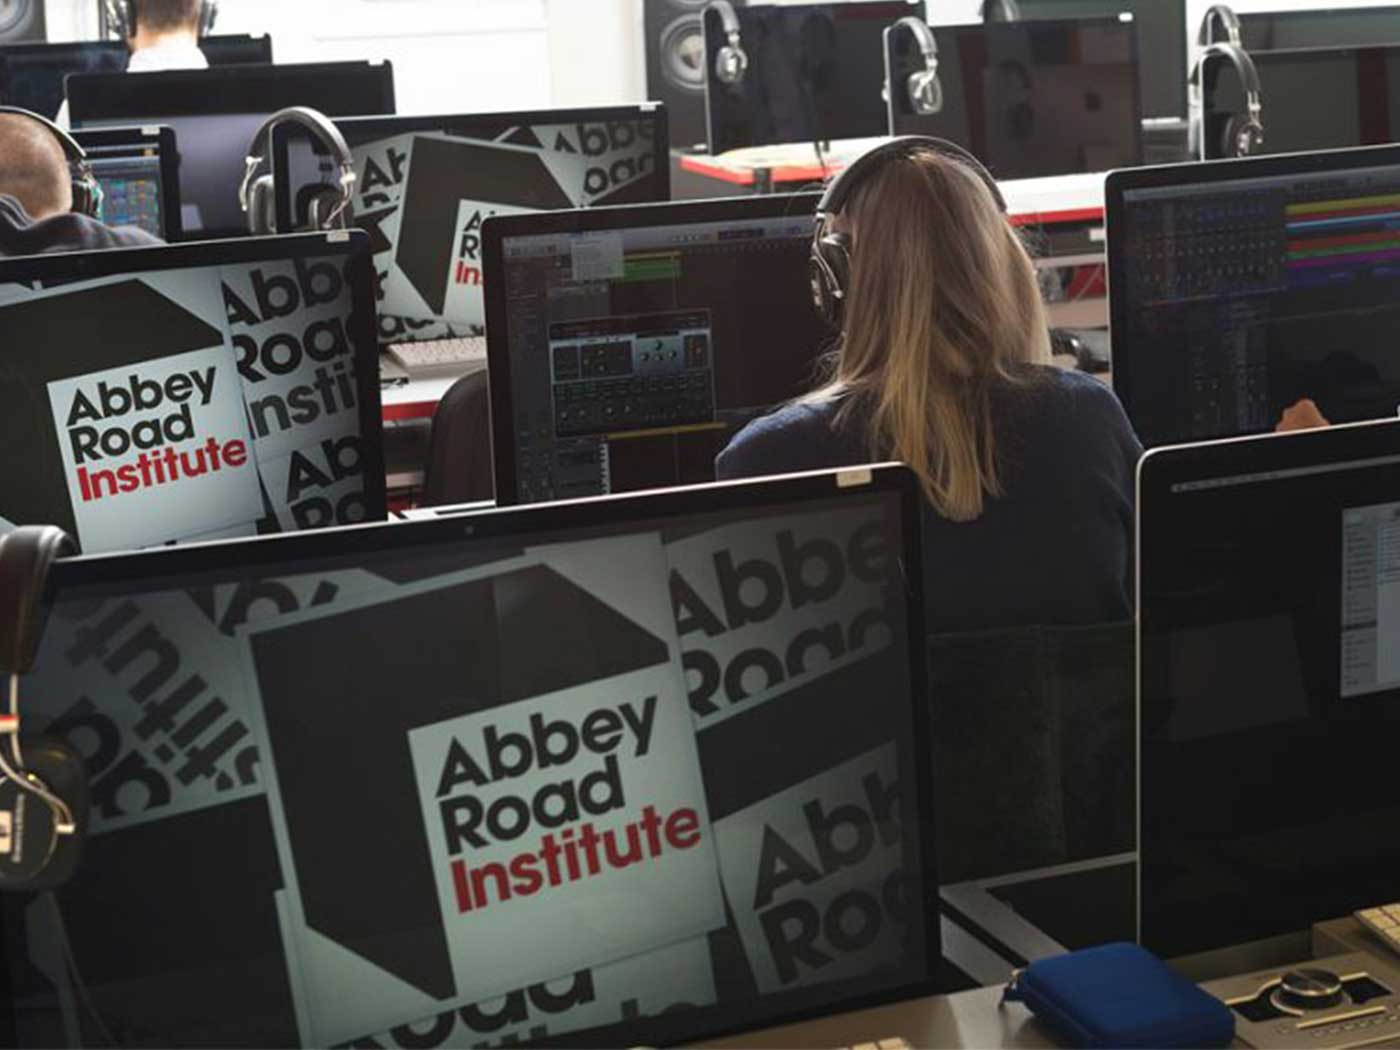 Abbey Road Equalise launches on International Womens Day 2020 1400x1050